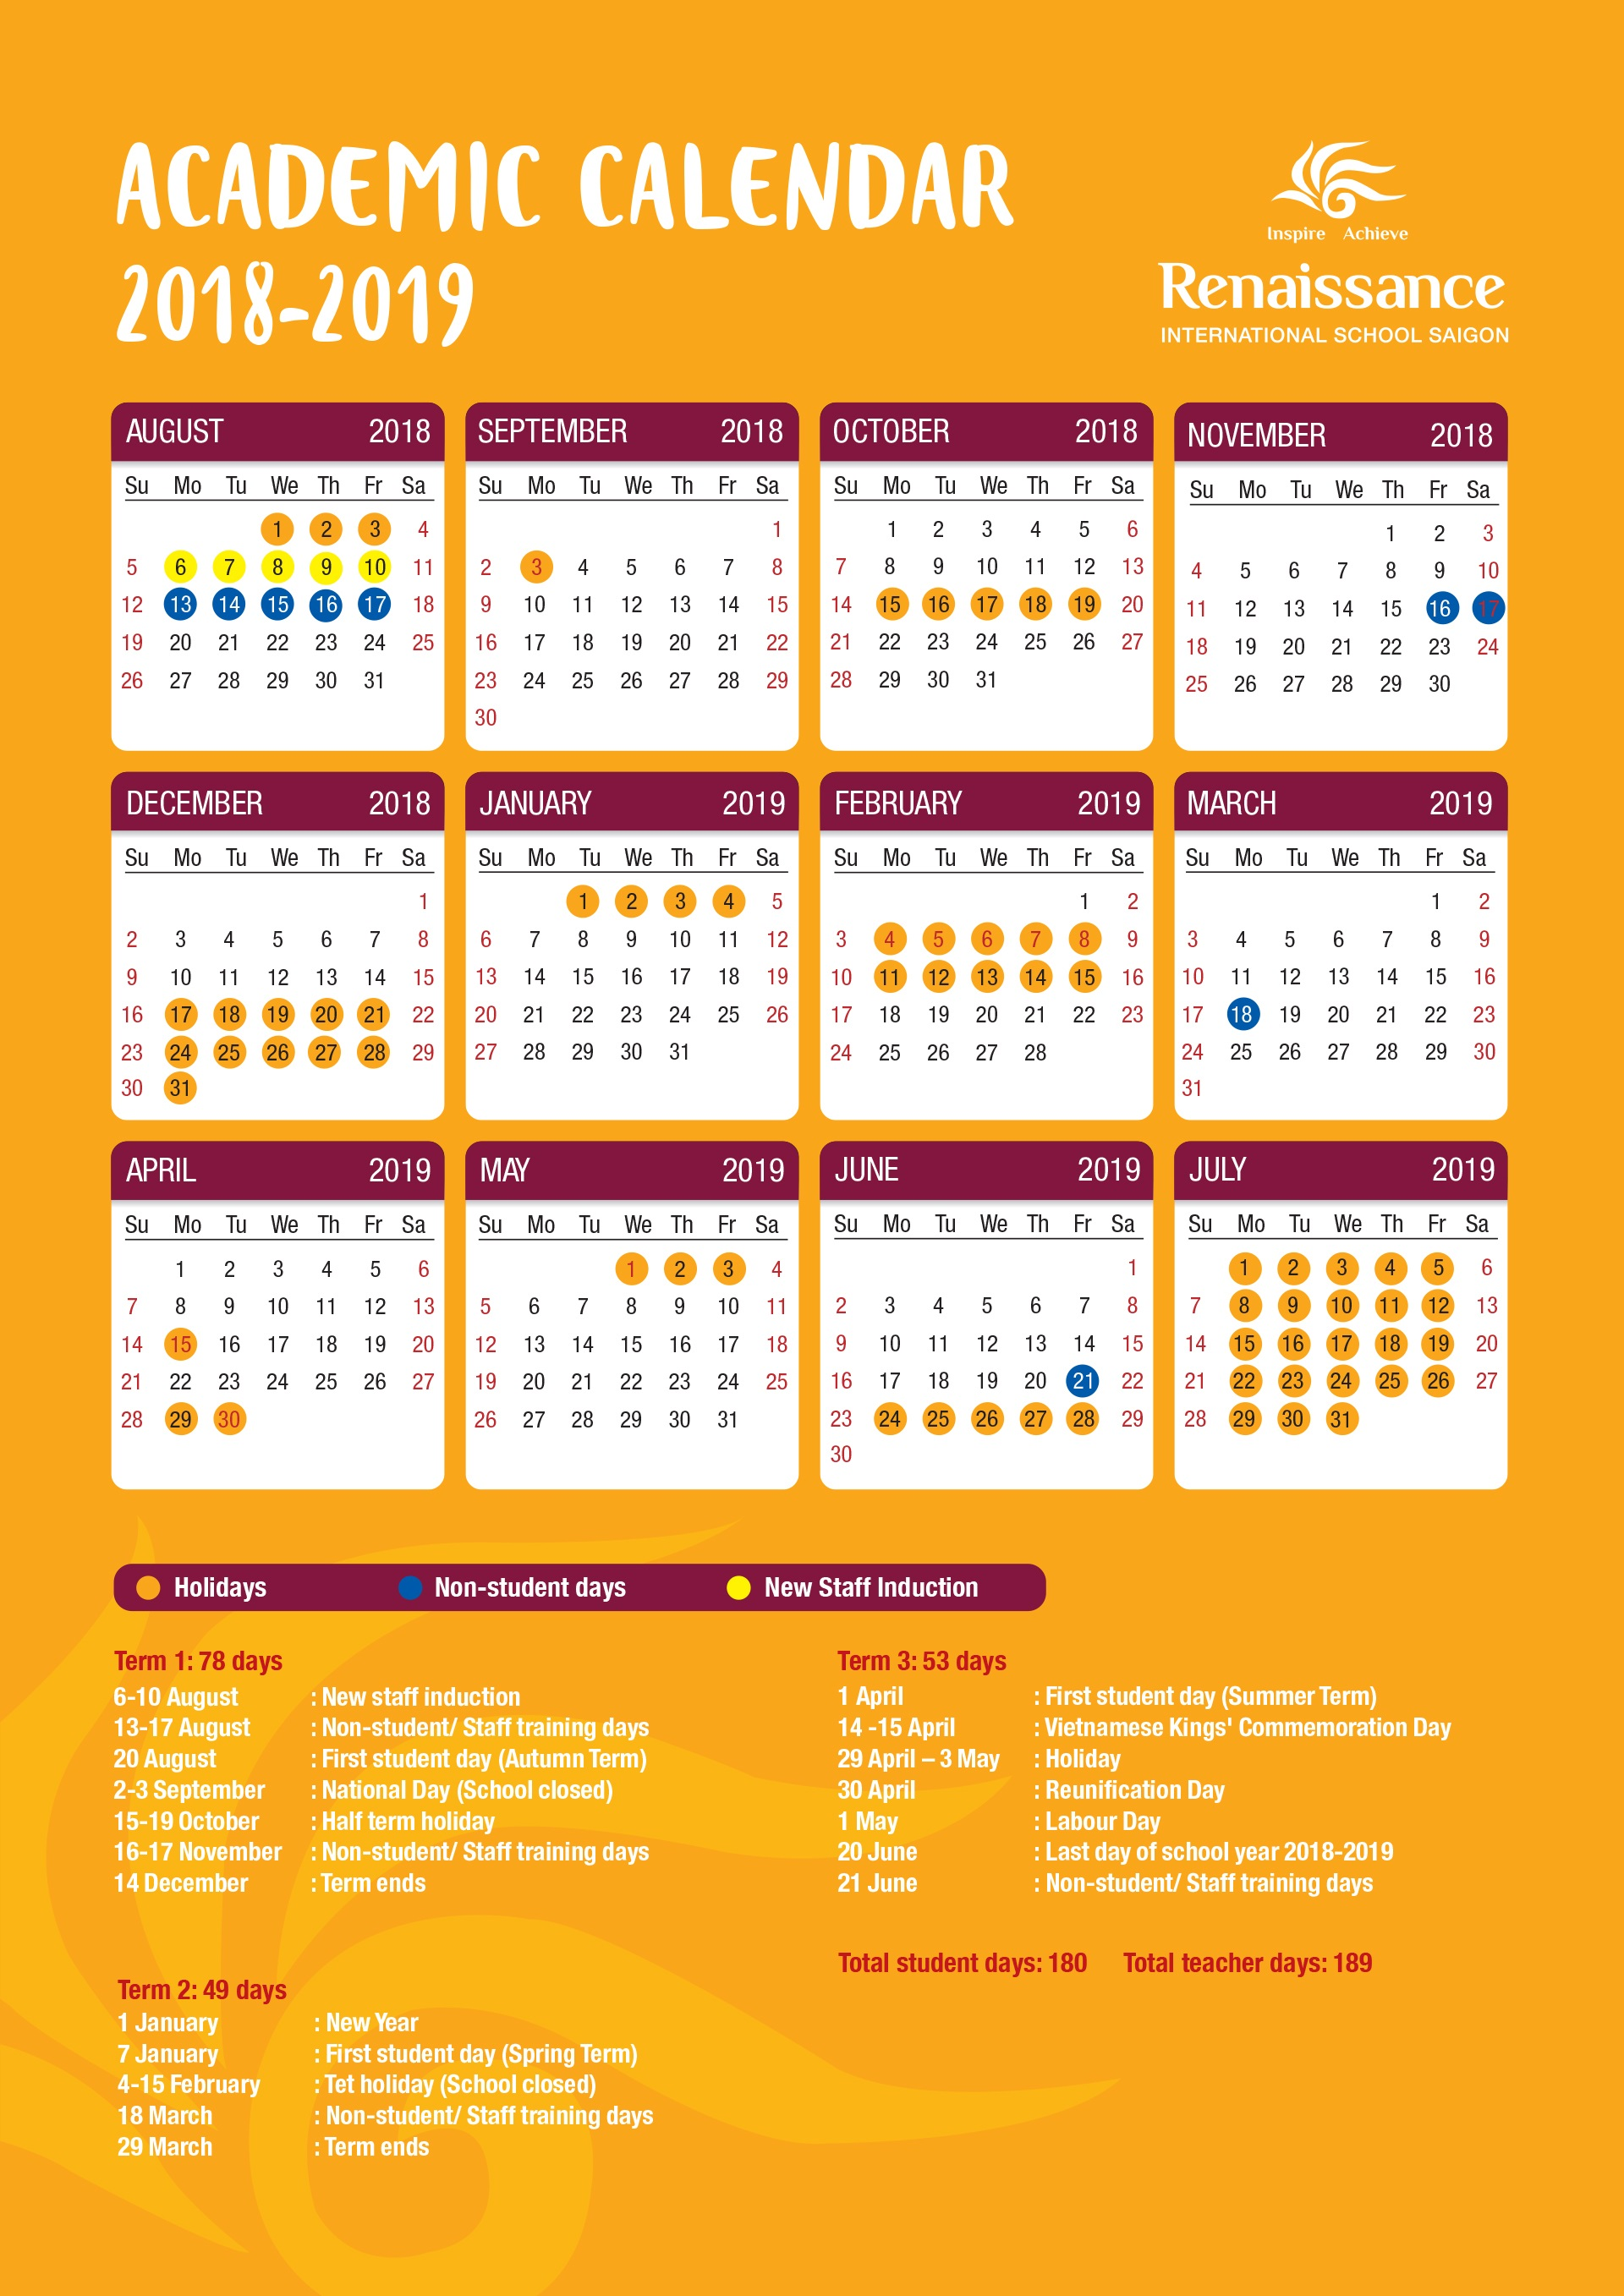 Vietnam School Year Calendar 2019 With ACADEMIC CALENDAR Renaissance International Saigon